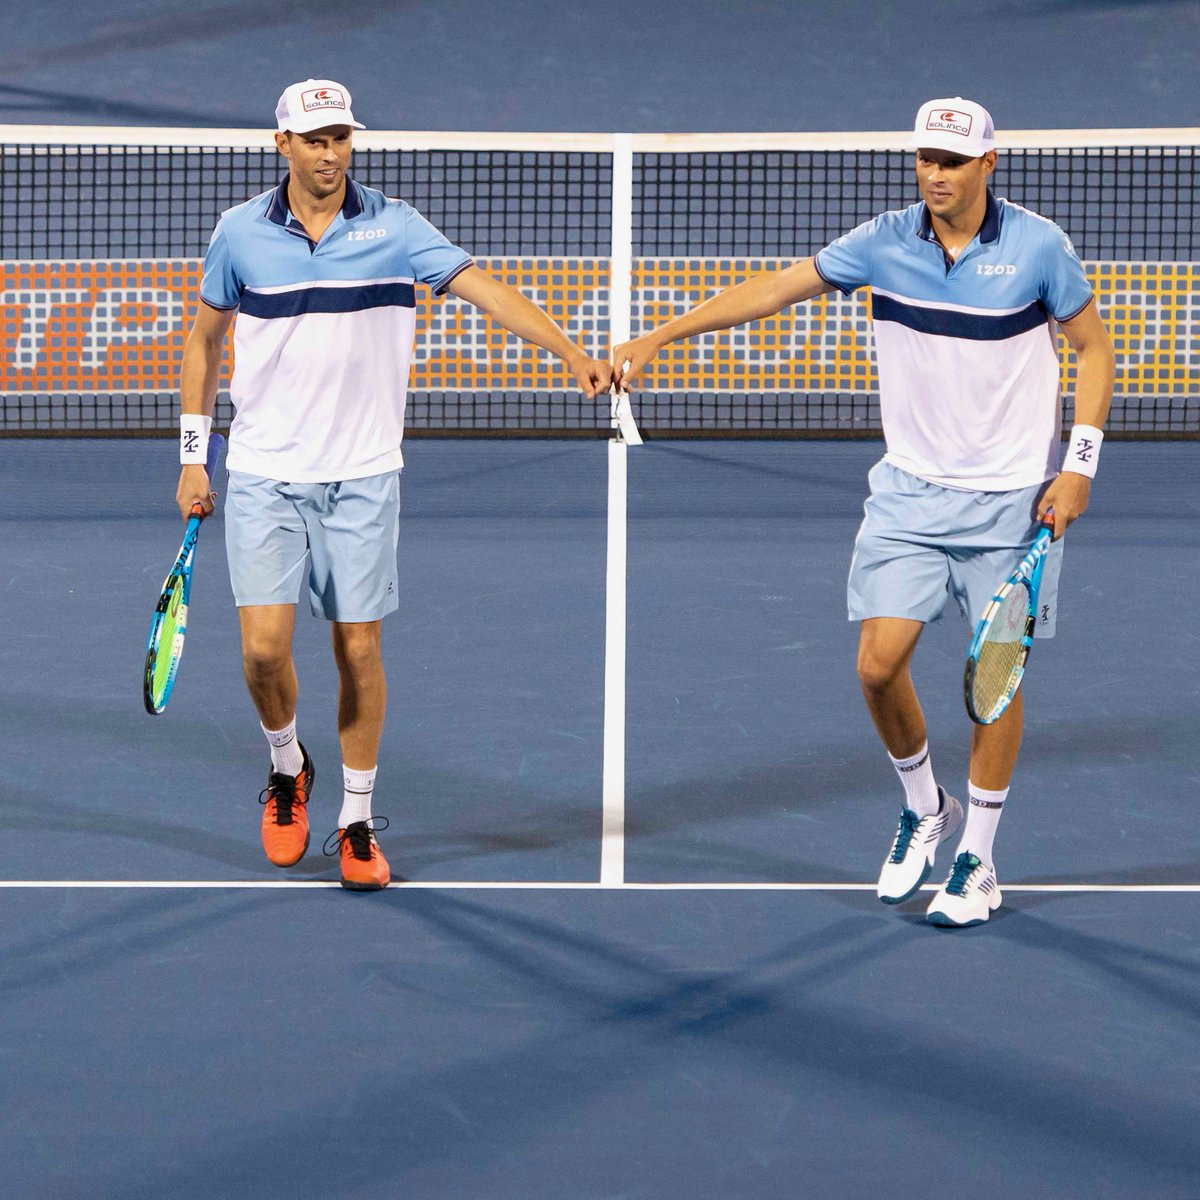 ✅ Make @ATPChampions debut ✅ Win in straight sets   Welcome back, Bryan Brothers!  #DBOpen | @Bryanbros | @Bryanbrothers https://t.co/vUXrDKAaHR